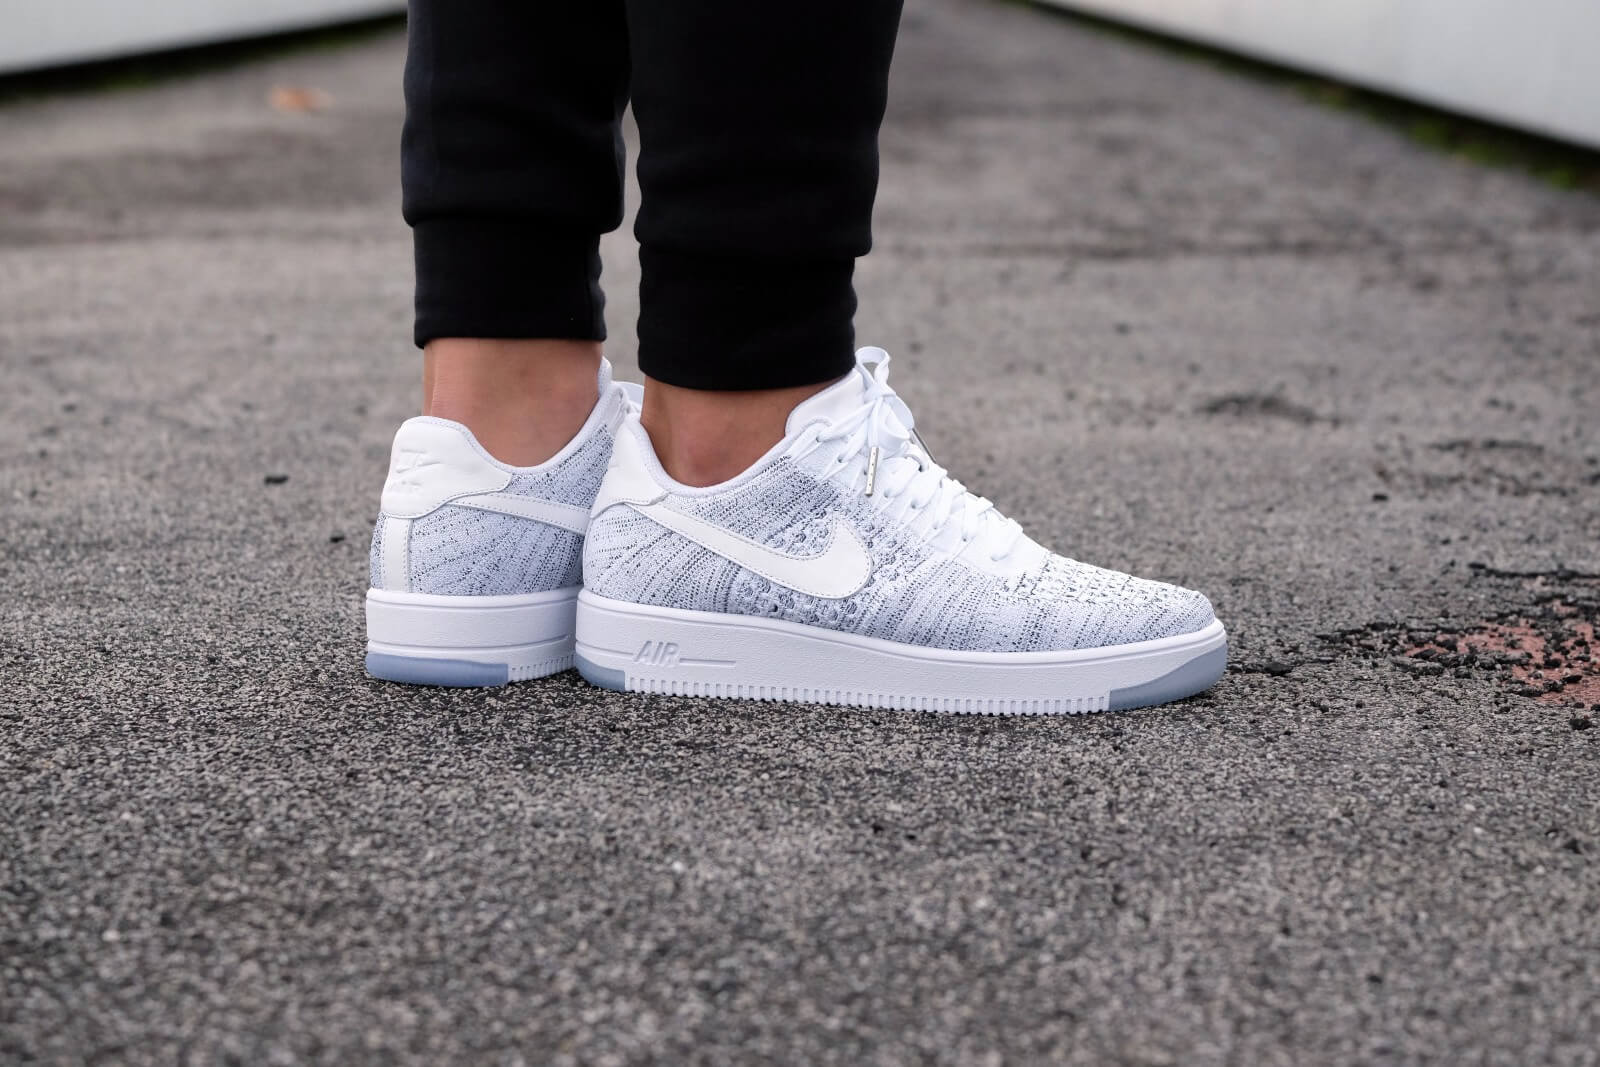 Nike Womens Air Force 1 Flyknit Low WhiteGrey 820256 103